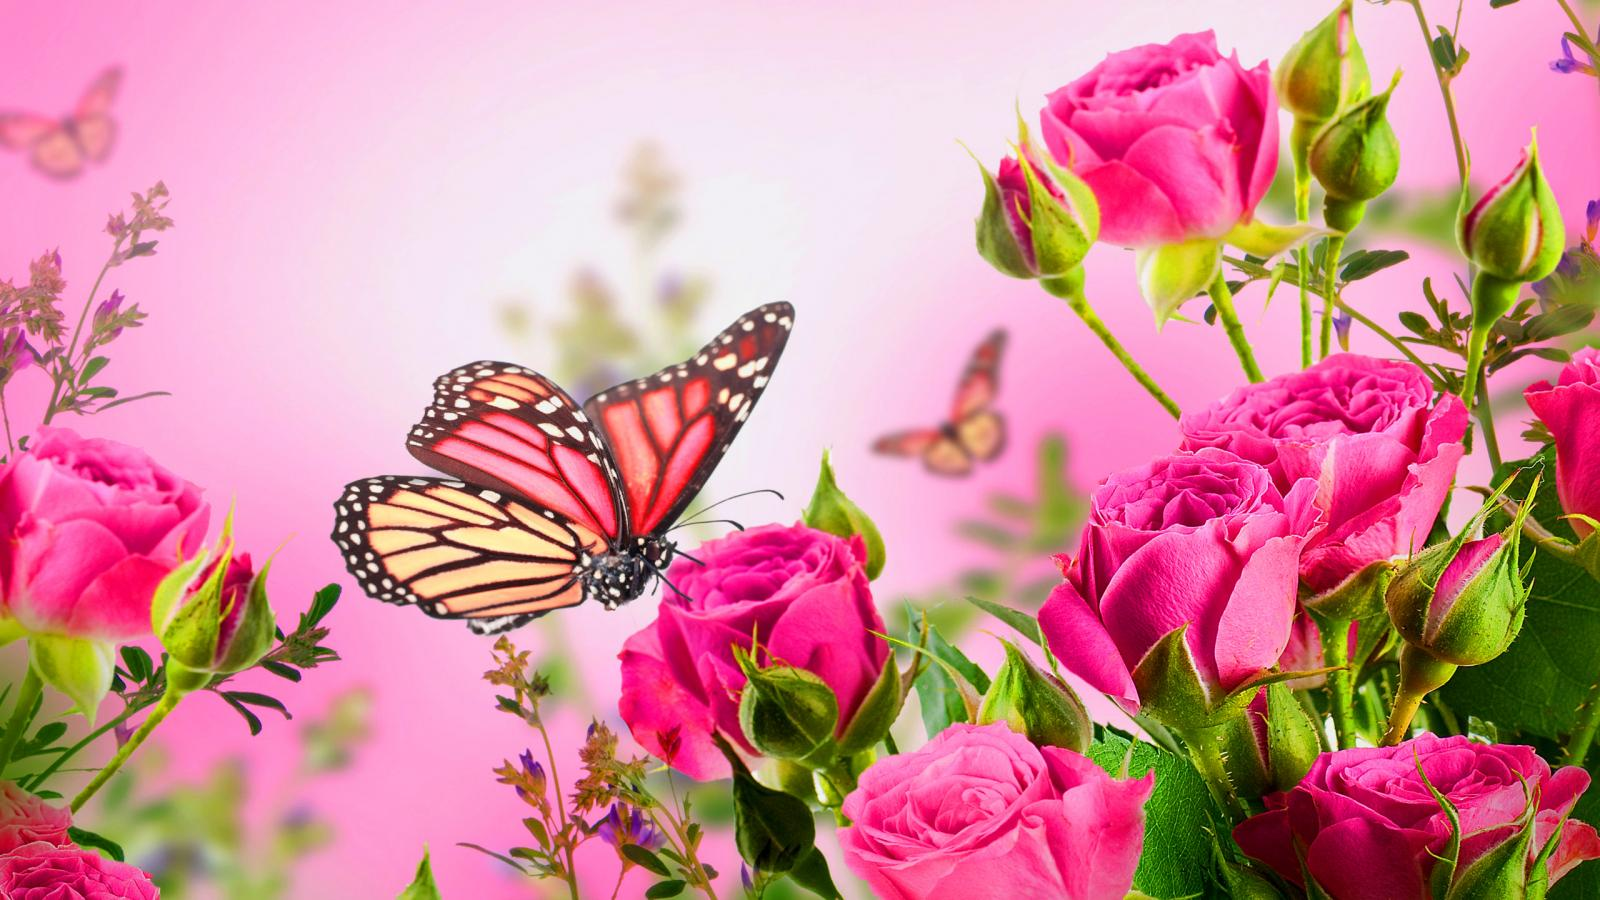 Hd Wallpapers Butterflies Widescreen High Resolution Pictures Of Rose Flowers And Butterfly For